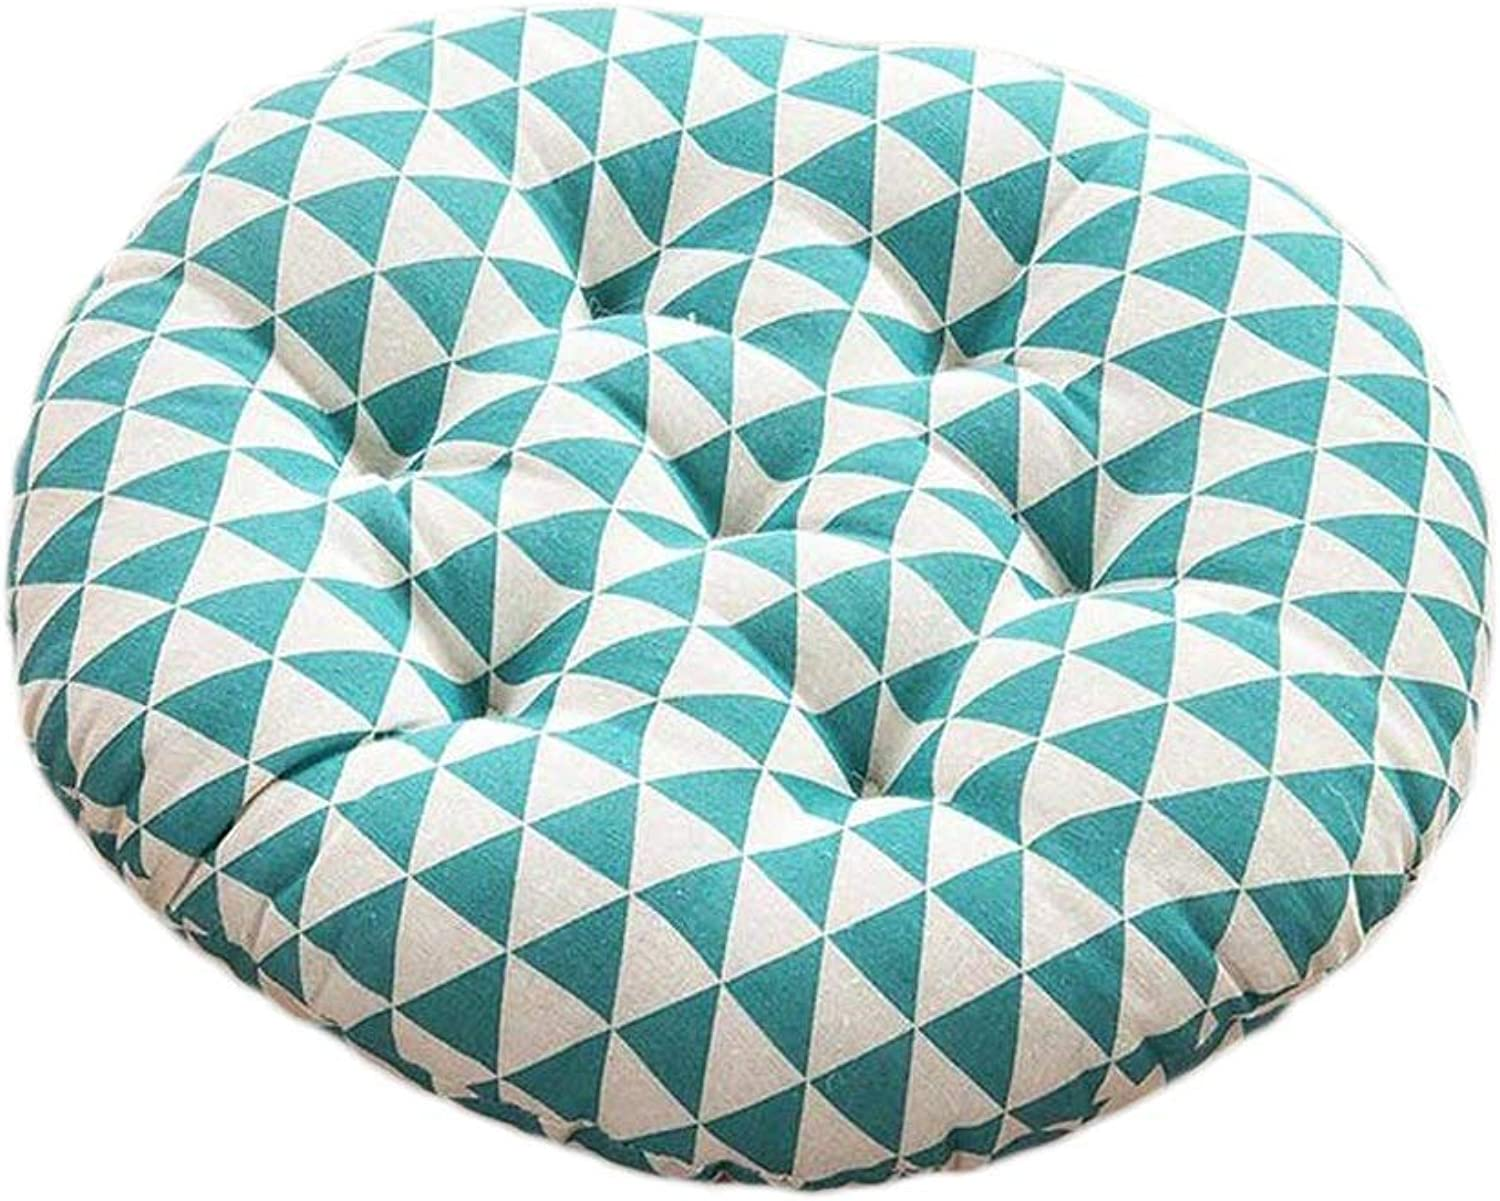 Seat Cushion Seat Cushion Circular Cushion bluee Triangle Pattern Office Computer Chair Student Thicken Sofa Lumbar Cushion Four Seasons Available Chair Pad ( color   Common Models , Size   40408cm )